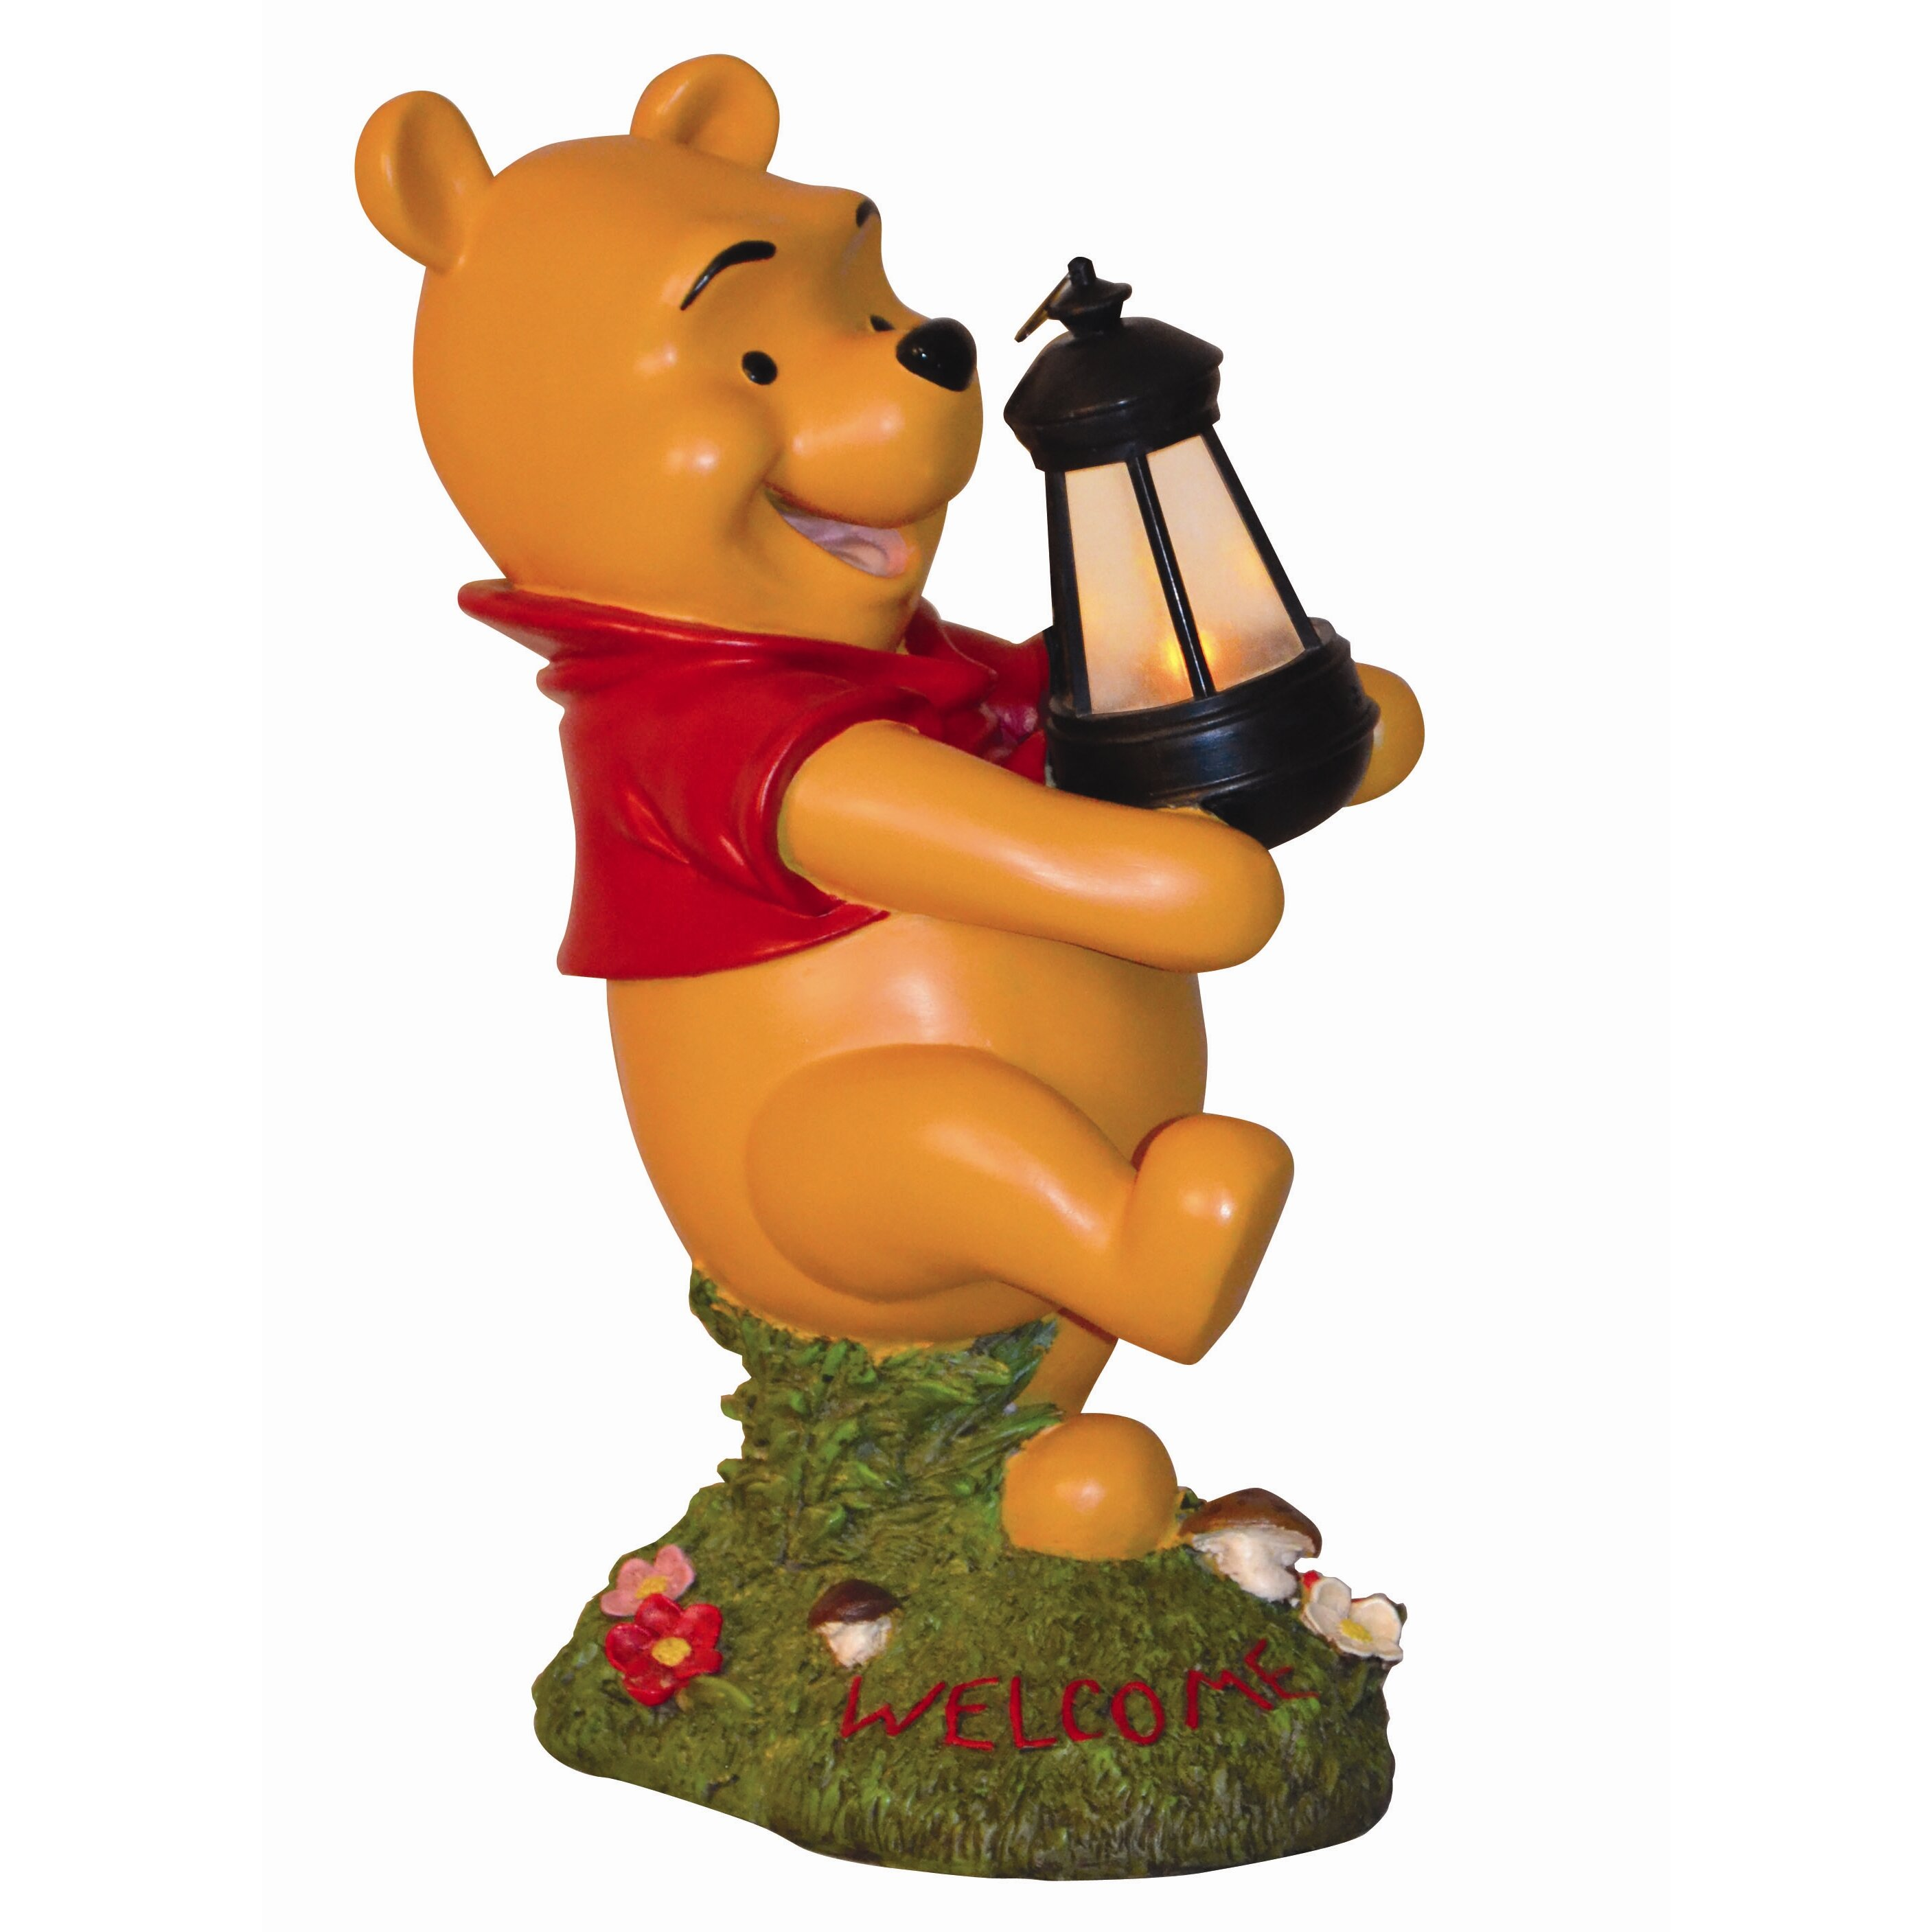 woods international disney winnie the pooh holding lighted lantern statue reviews wayfair. Black Bedroom Furniture Sets. Home Design Ideas